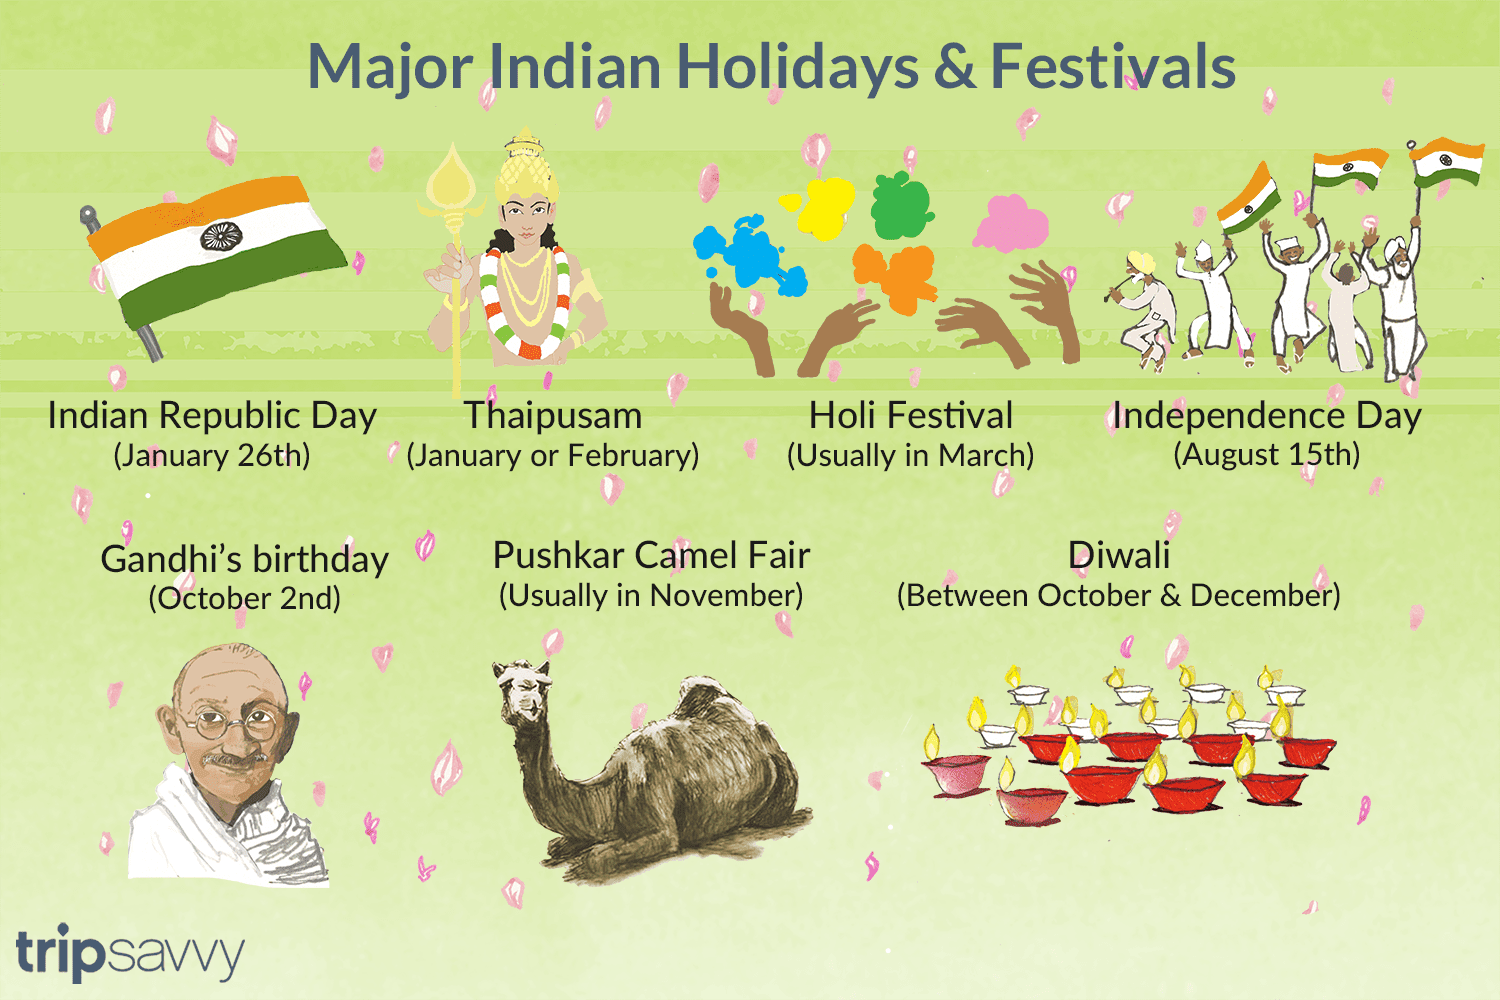 Guide to Major Indian Holidays and Festivals